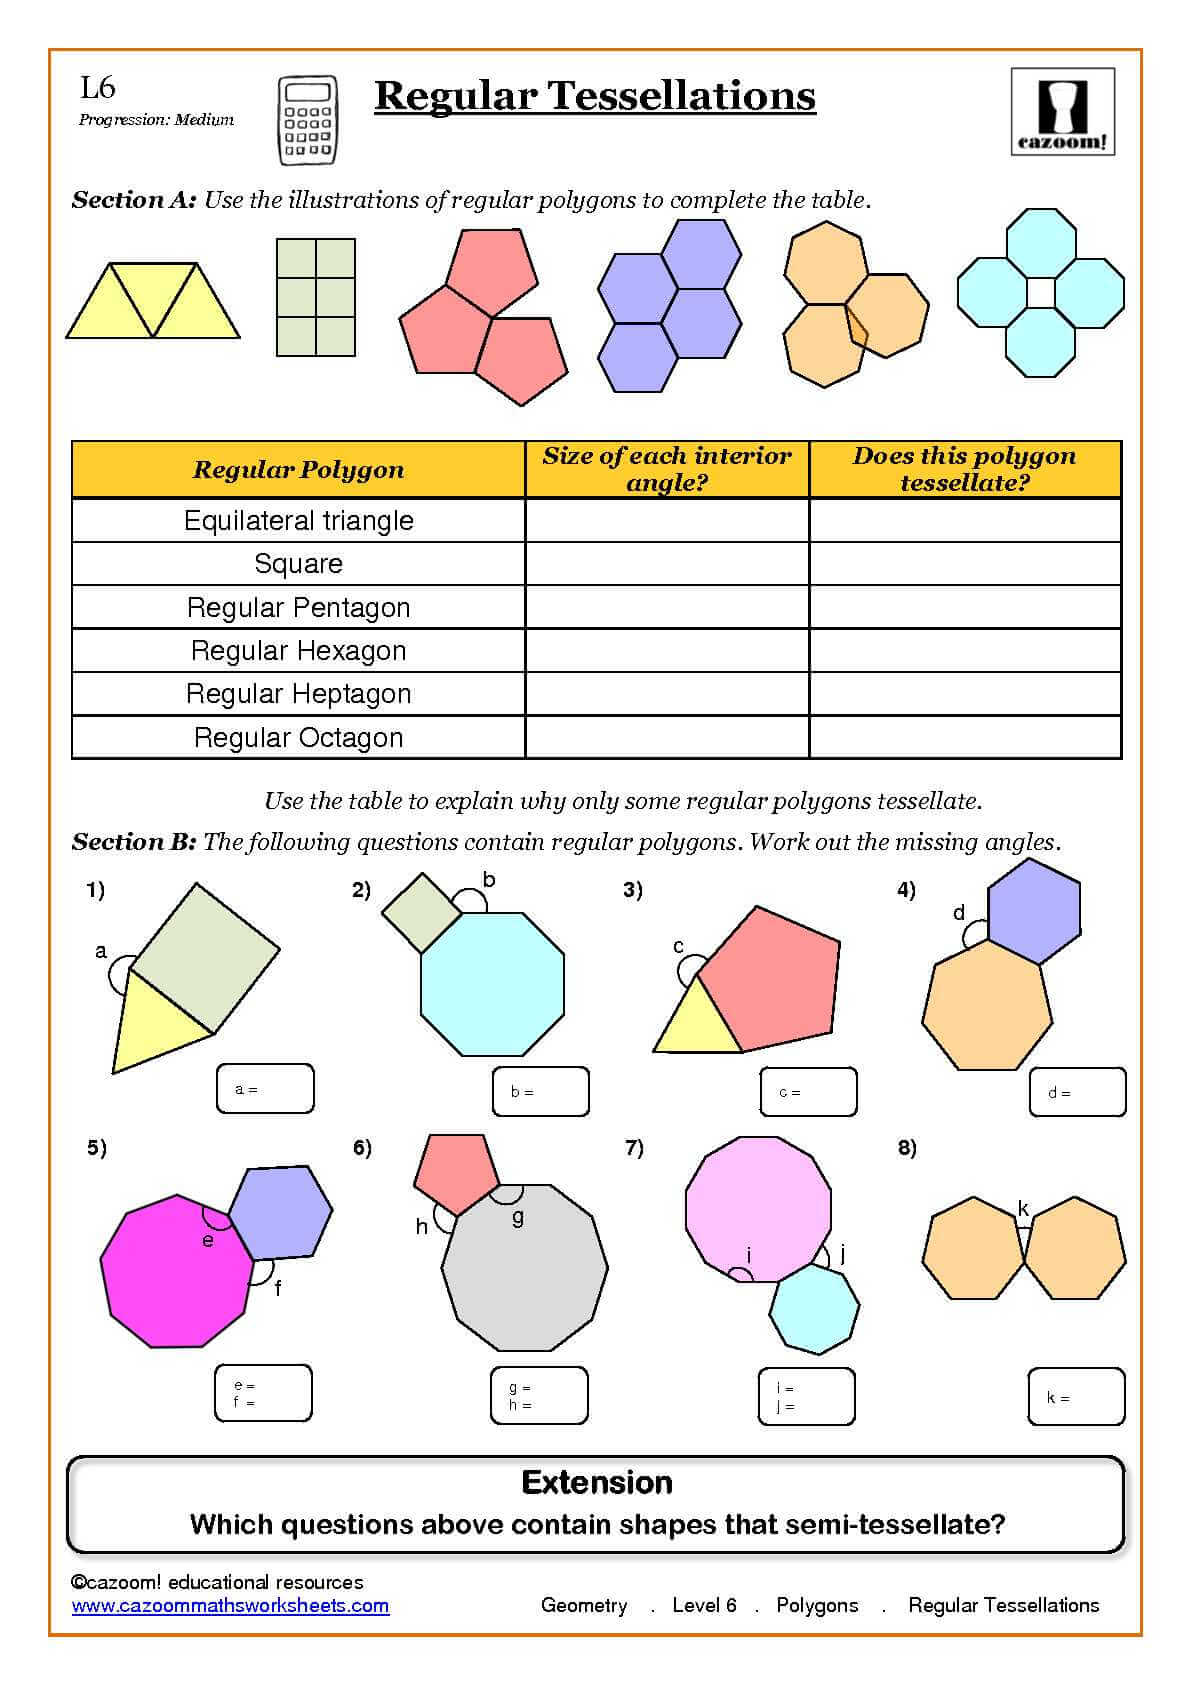 Level 2 Maths Worksheets revision material skills – A Level Maths Worksheets